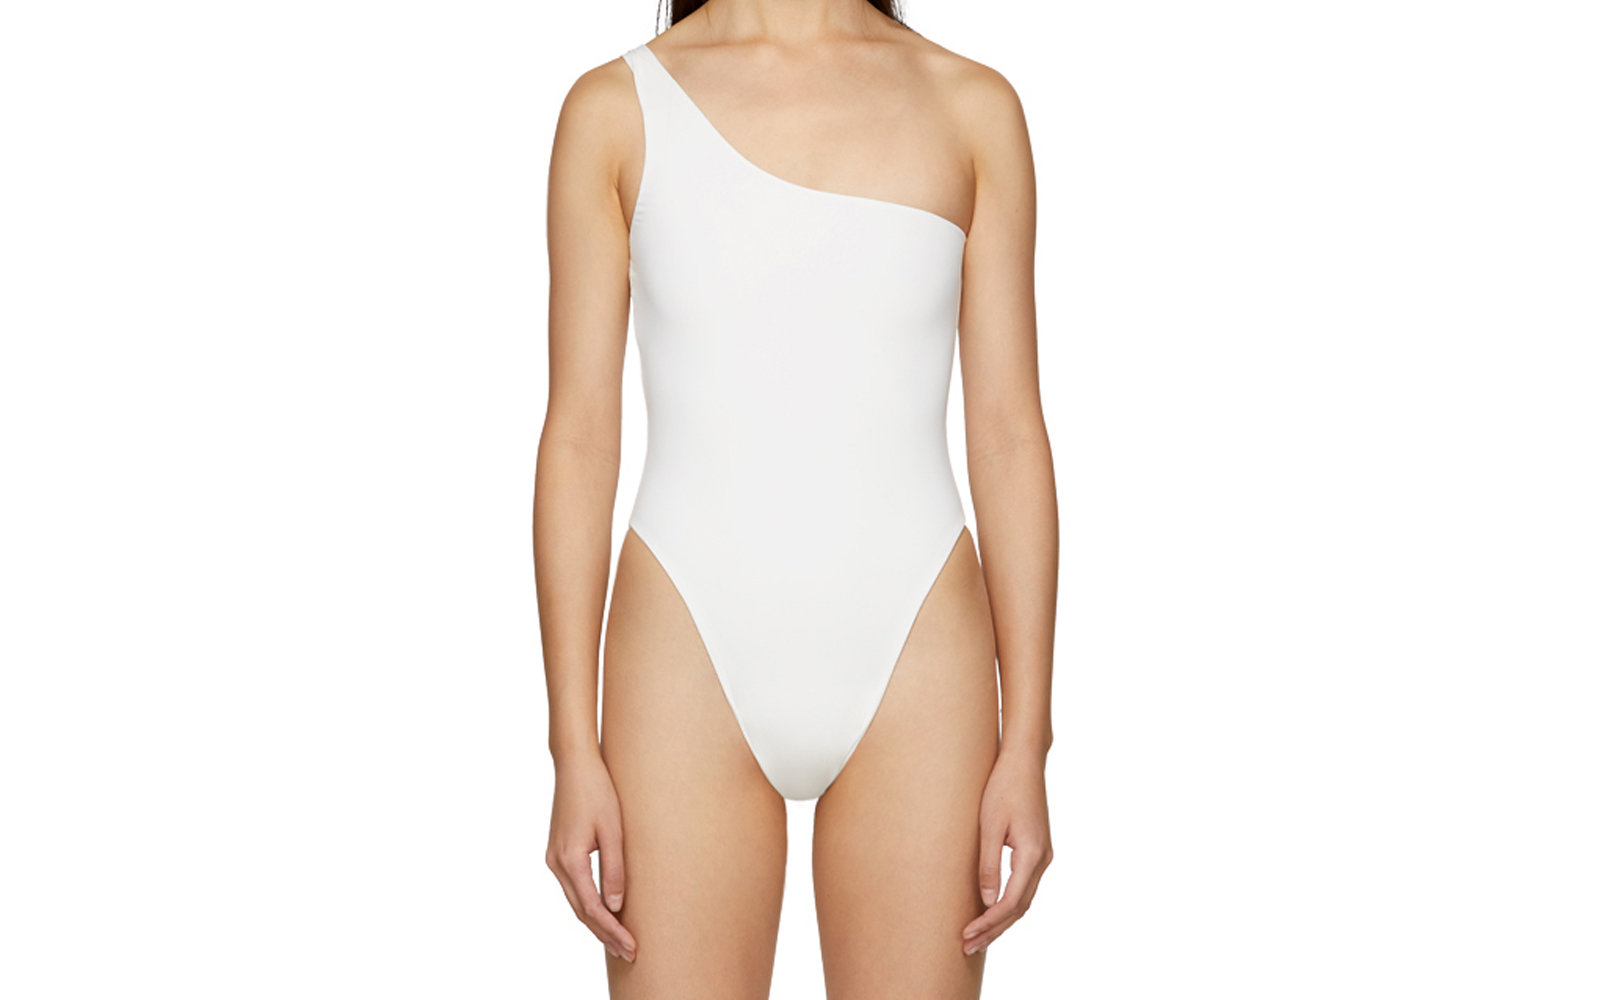 2019 Swimsuit Trends